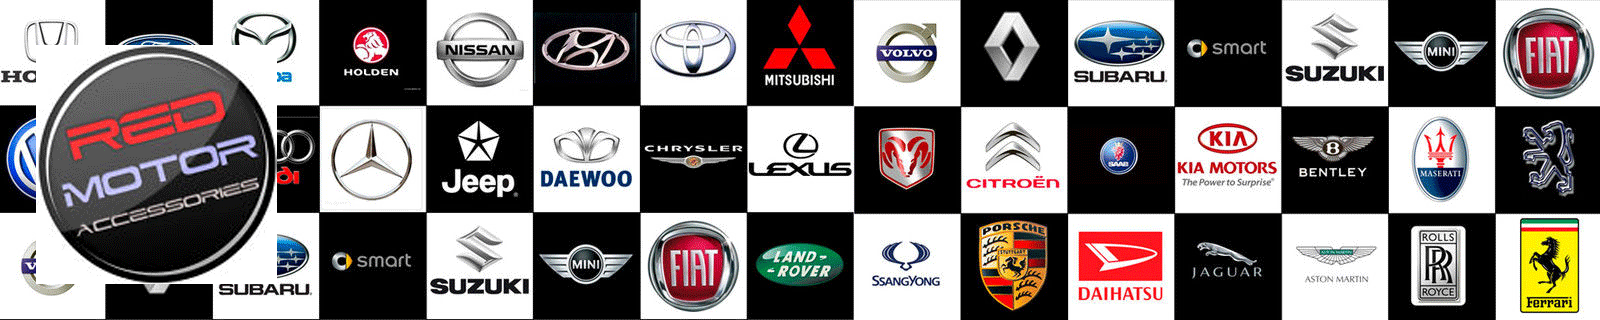 RED MOTOR ACCESSORIES